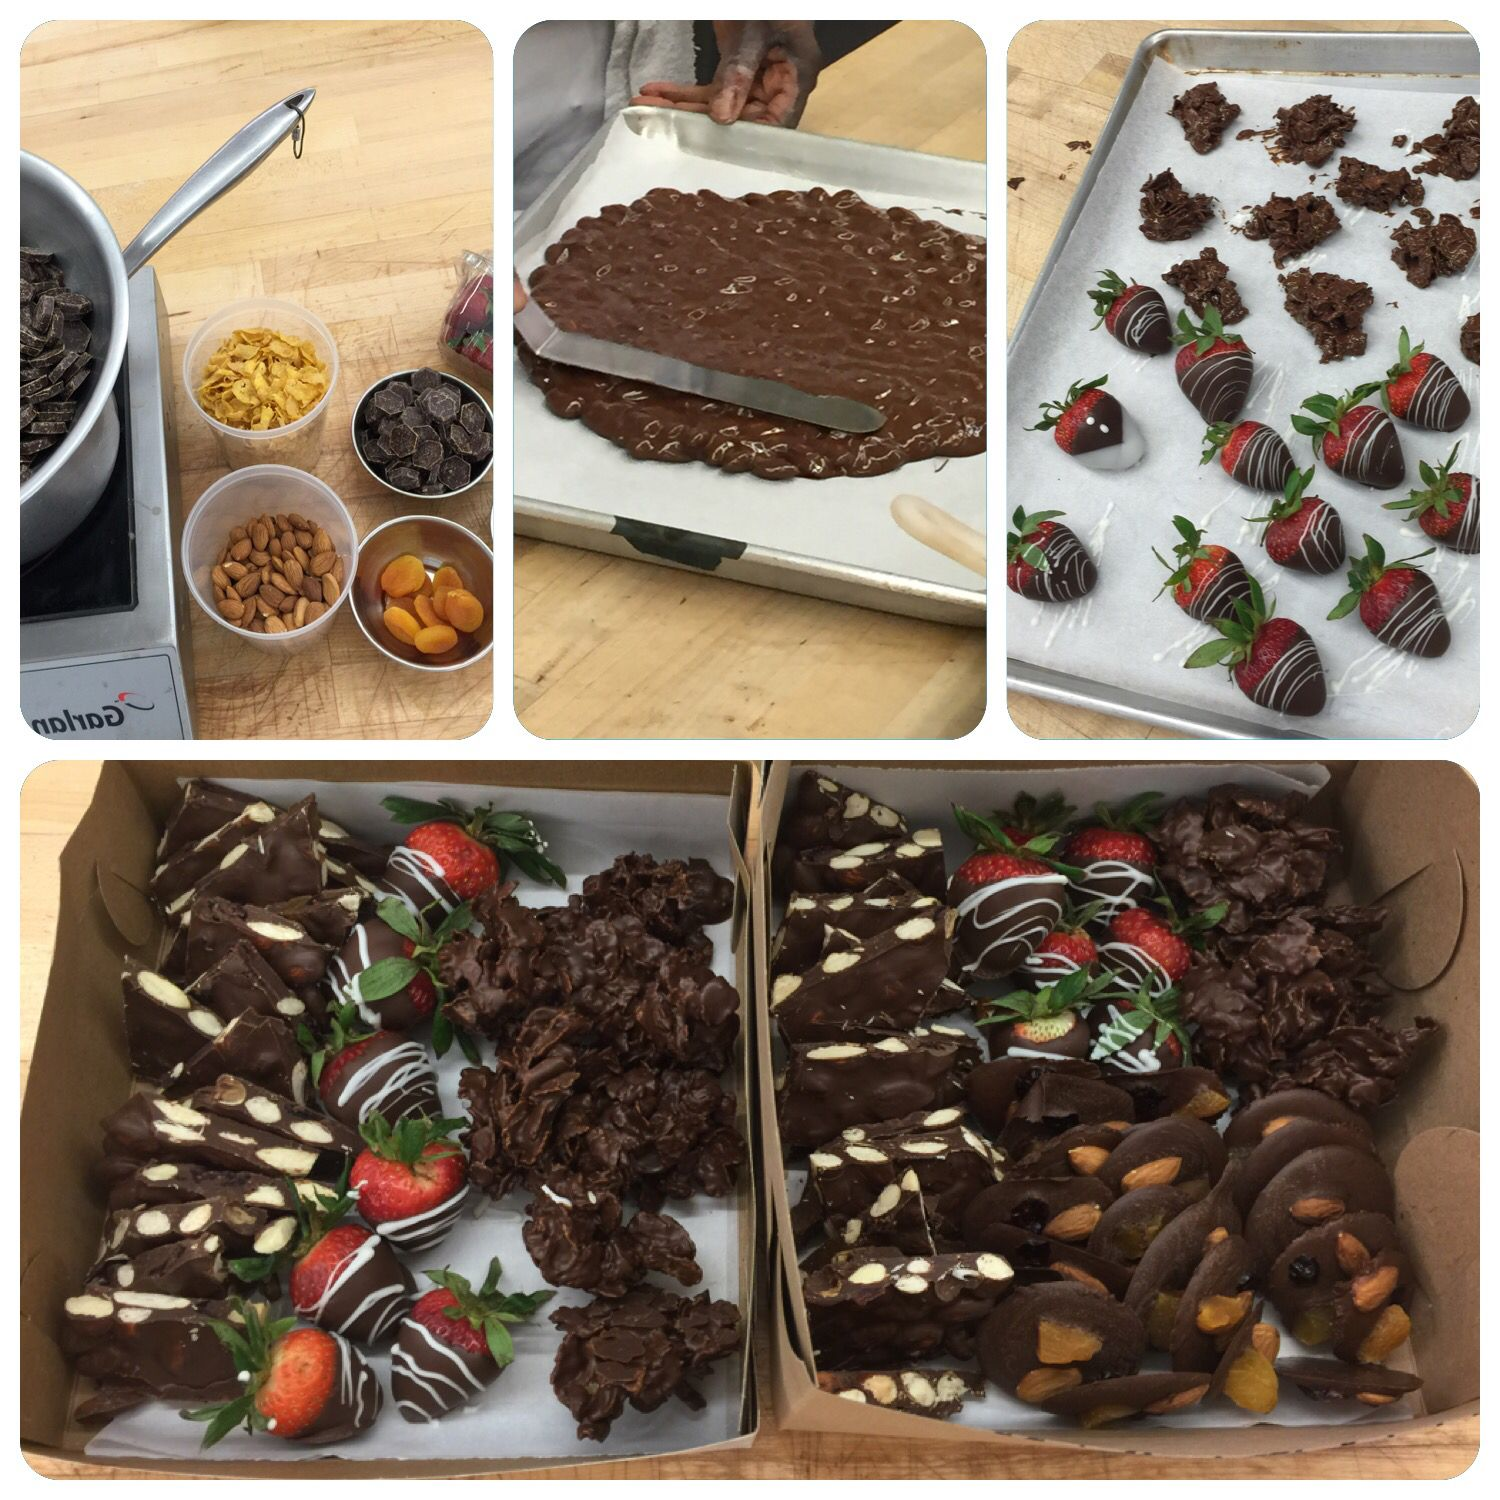 Tempering chocolate class at George Brown College (Baking